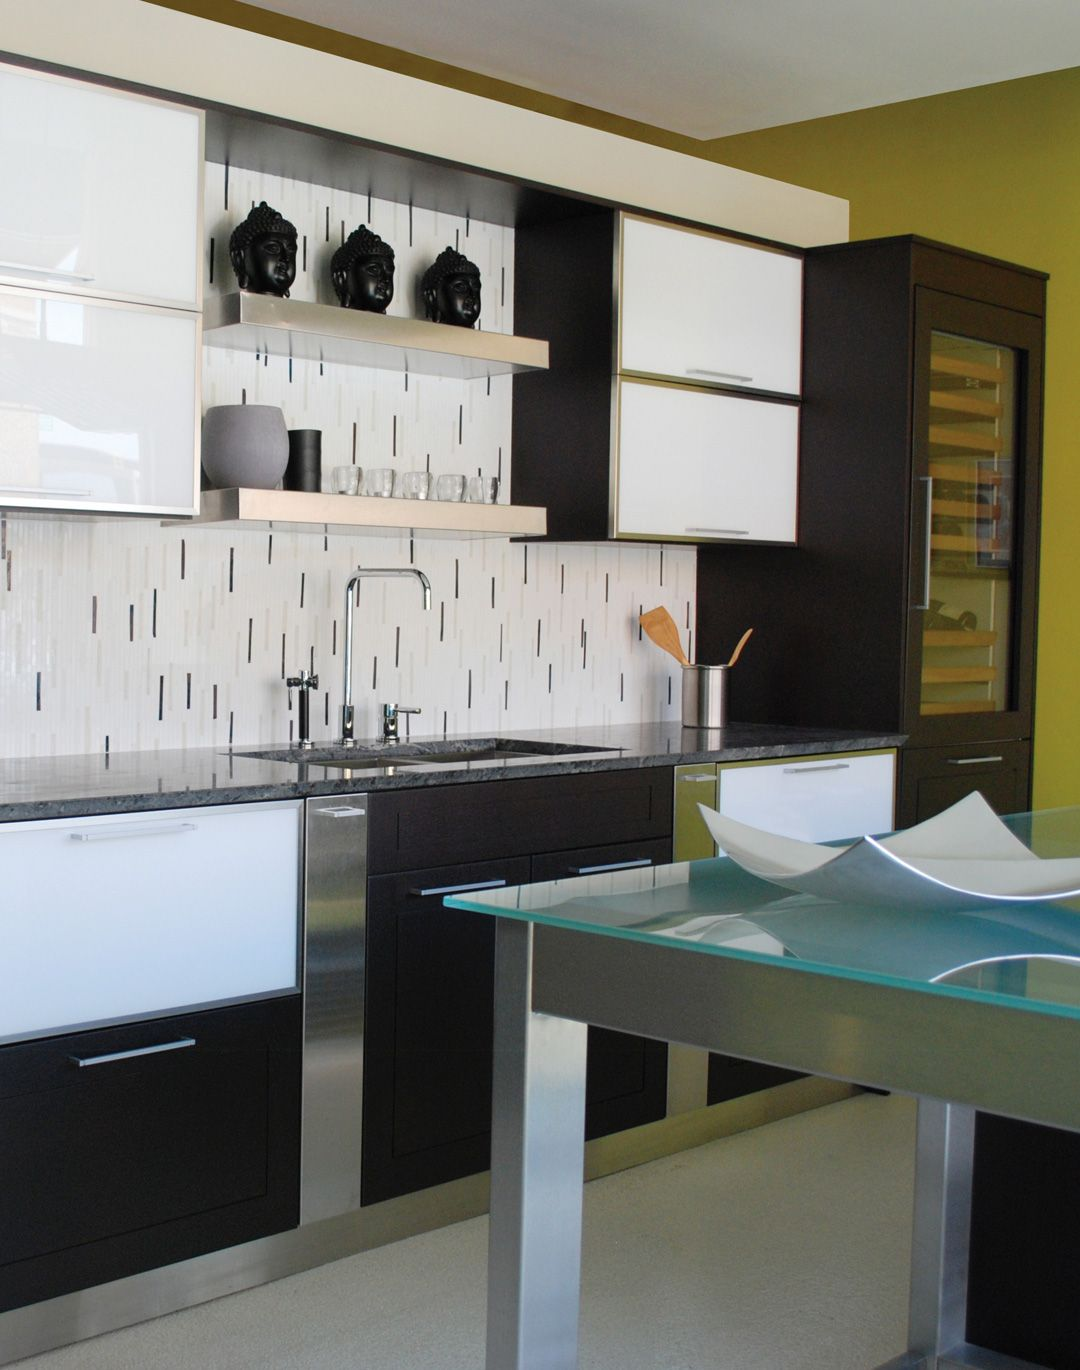 Contemporary Kitchen Cabinets In Simplicity Contemporary Kitchen Cabinets Contemporary Kitchen Kitchen Design